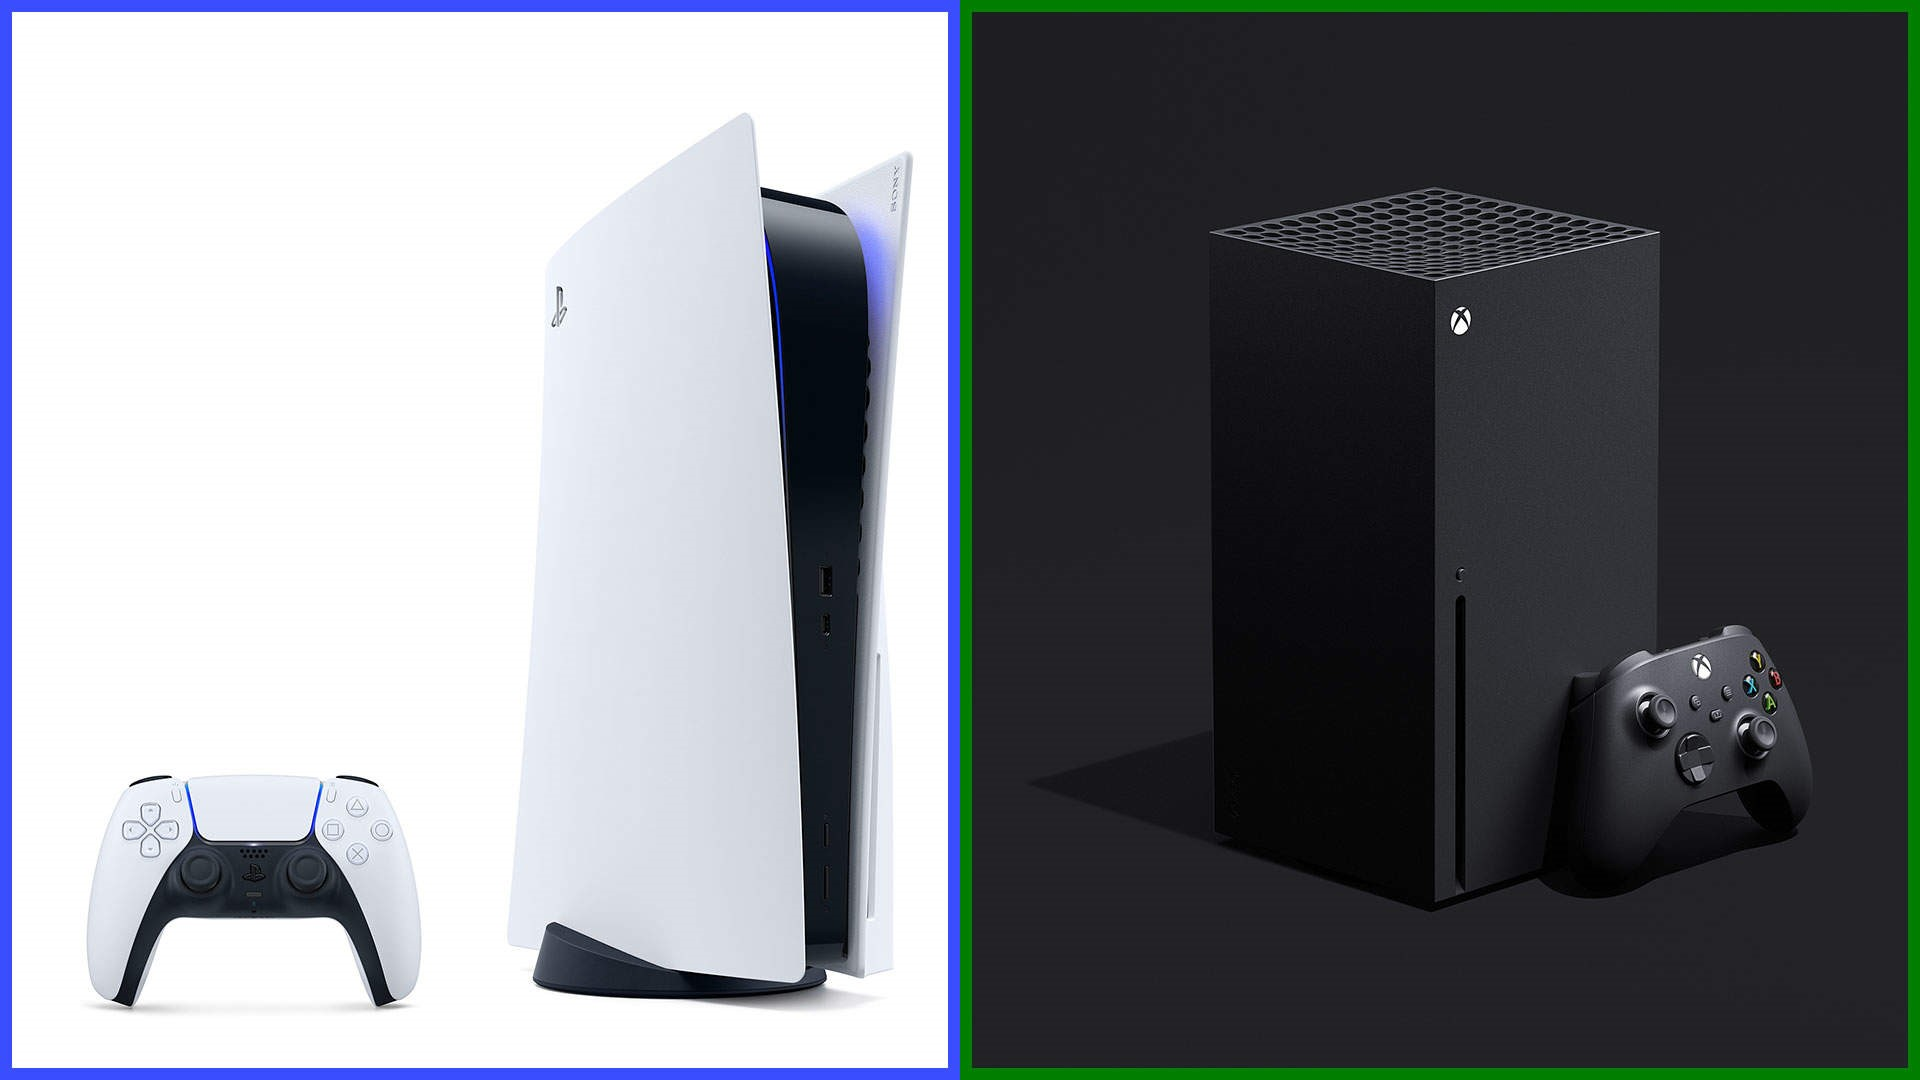 The Next Gen: How Do They Stack Up?